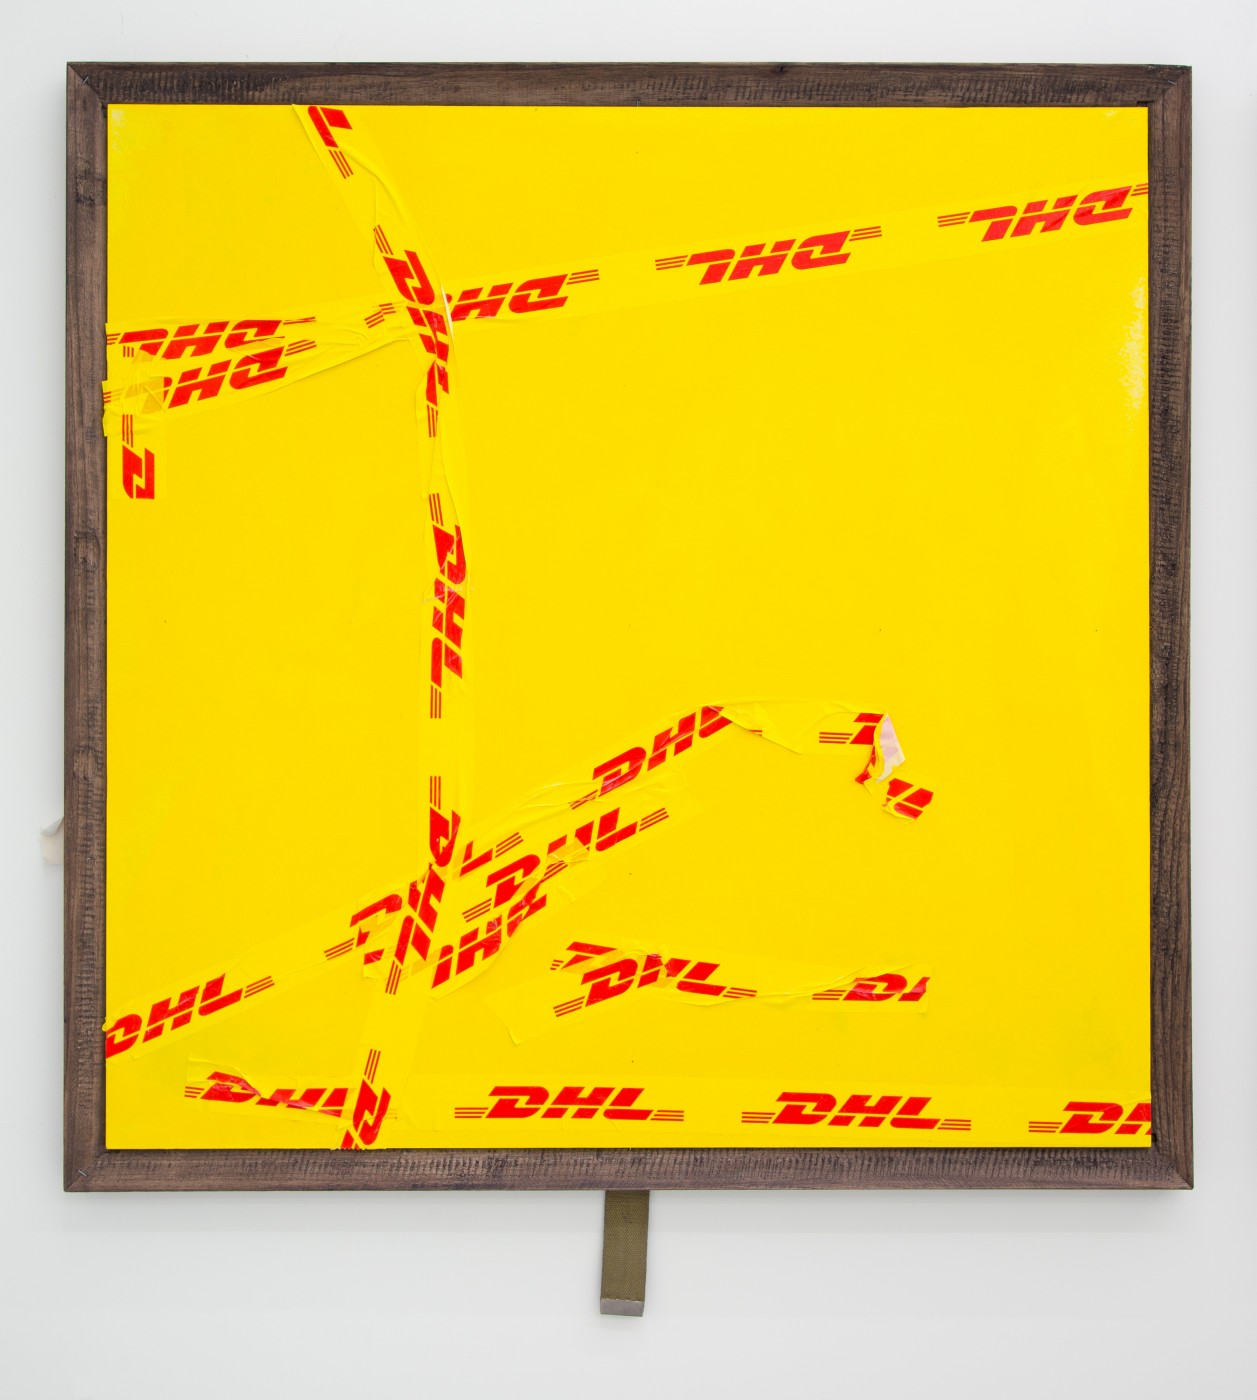 DIRECTION OF TRAVEL  What Do You Do in a Town Where Yellow Still Means Slow Down and Not Speed Up?</I>, 2017 Custom artist tape, wood stain, acrylic, mdf, wood, nails  Approx. 100 x 100 x 3,5 cm / 39 3/8 x 39 3/8 x 1 3/8 in  BRADLEY KRONZ